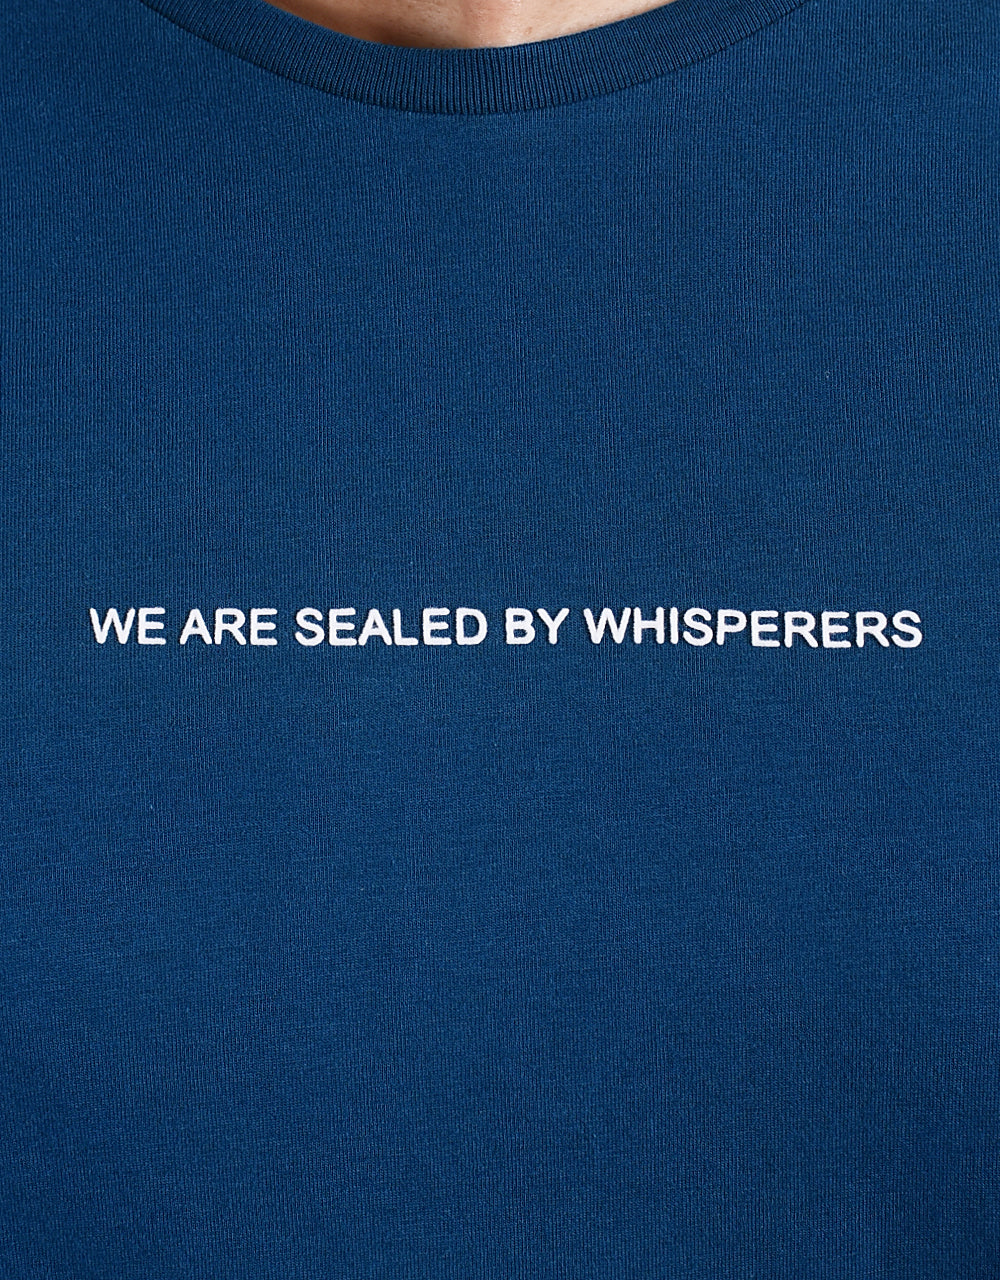 Whisperer 1 Graphic Tees